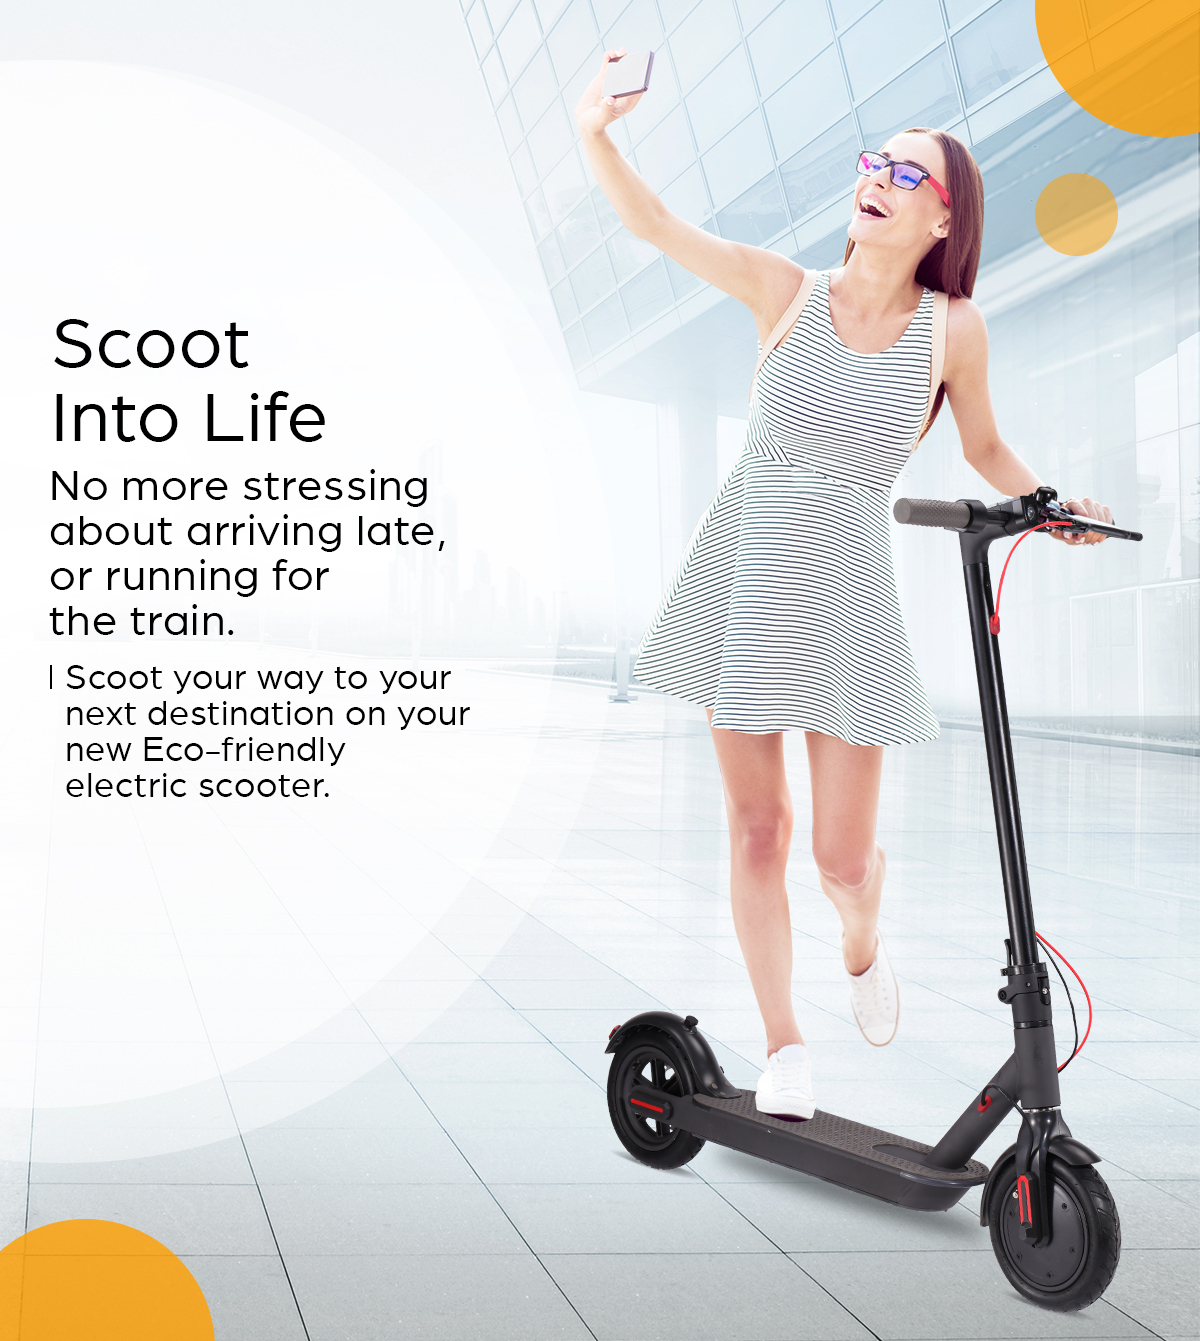 Scoot Into Life